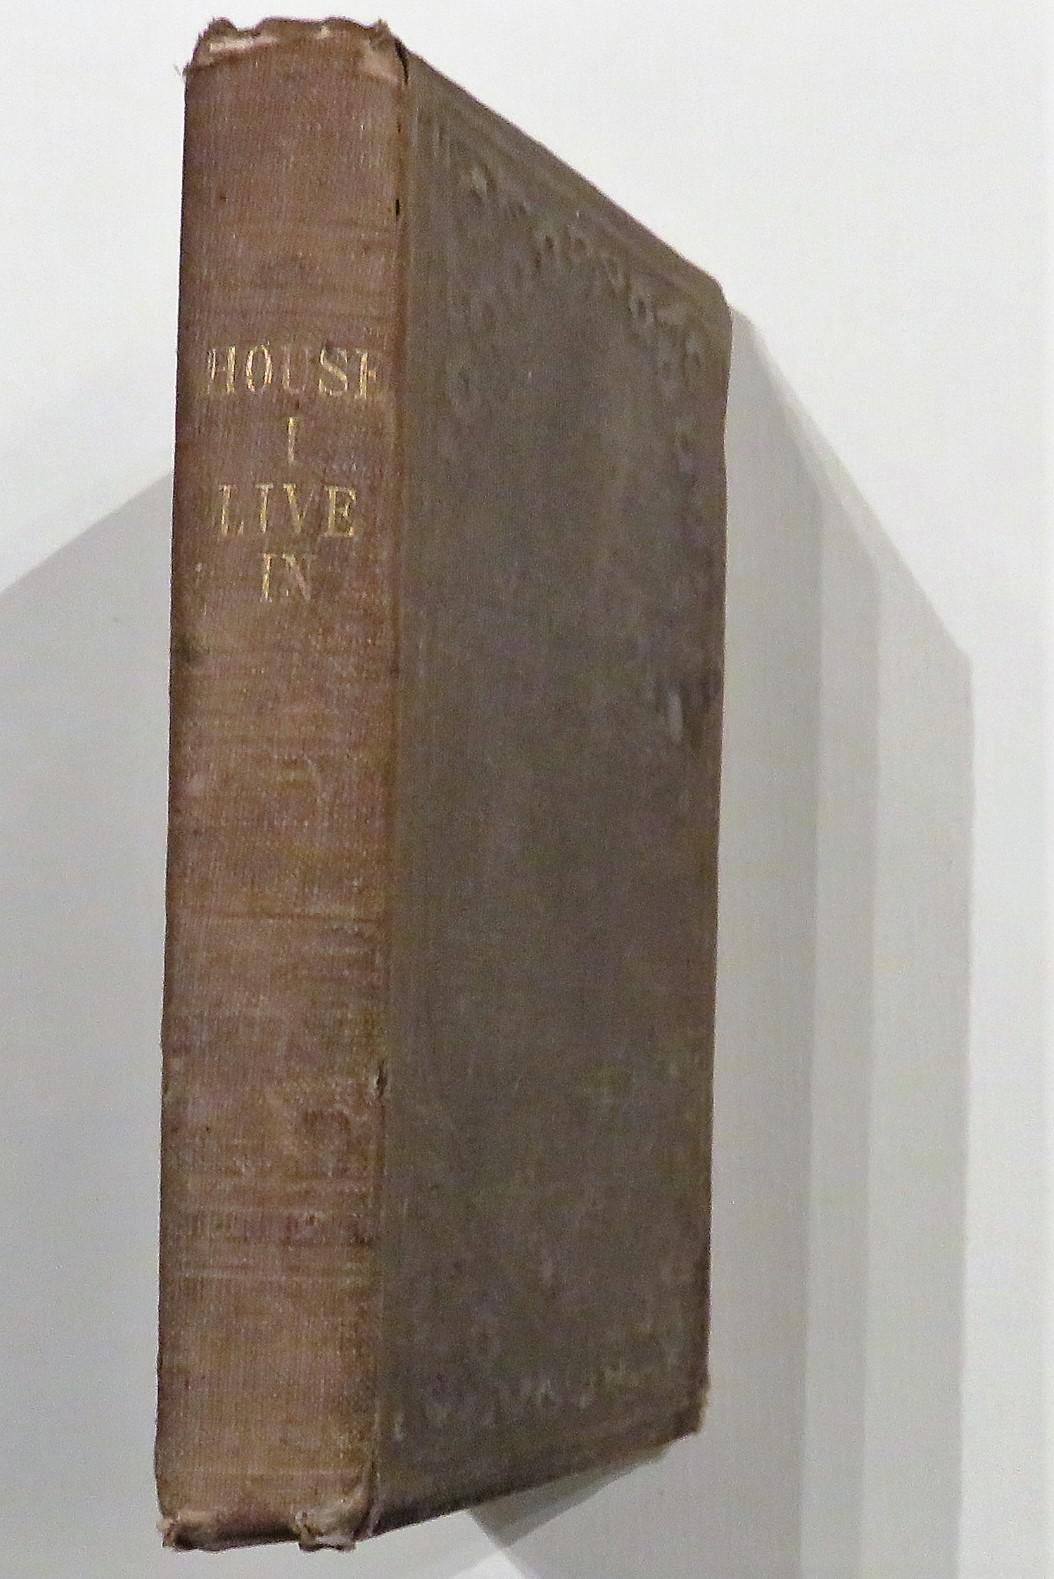 The House I Live In: Or, Popular Illustrations of the Functions of the Human Body For the Use of Families and Schools